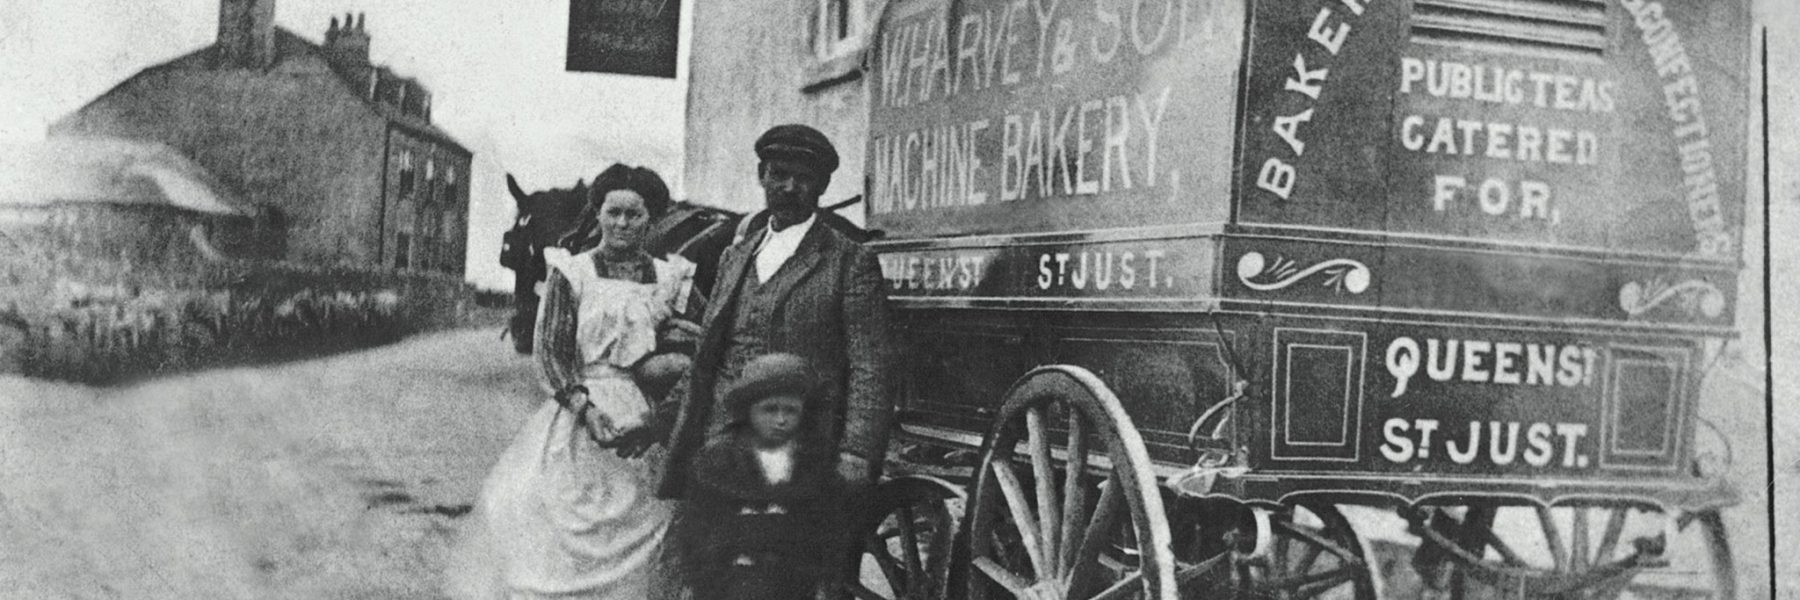 Full Time Night Driver - Plymouth Bakery